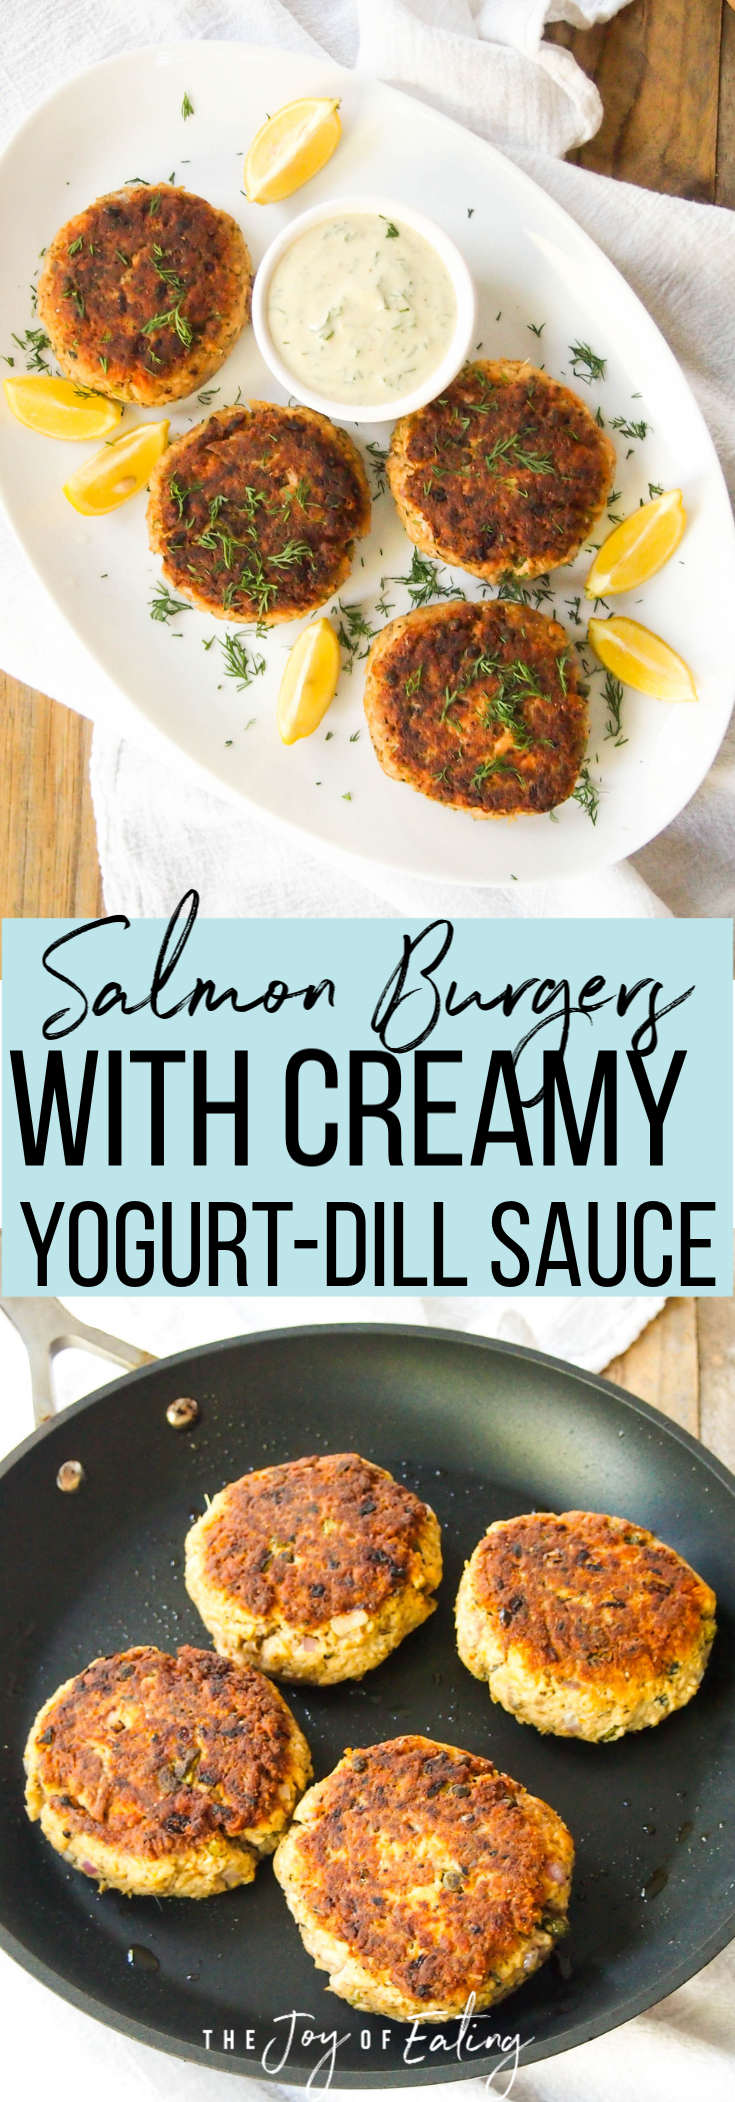 Easy salmon burgers served with a creamy yogurt-dill sauce! It's a budget friendly way to enjoy fatty fish! #cannedsalmon #cannedfish #burger #salmon #healthyrecipe #easyrecipe